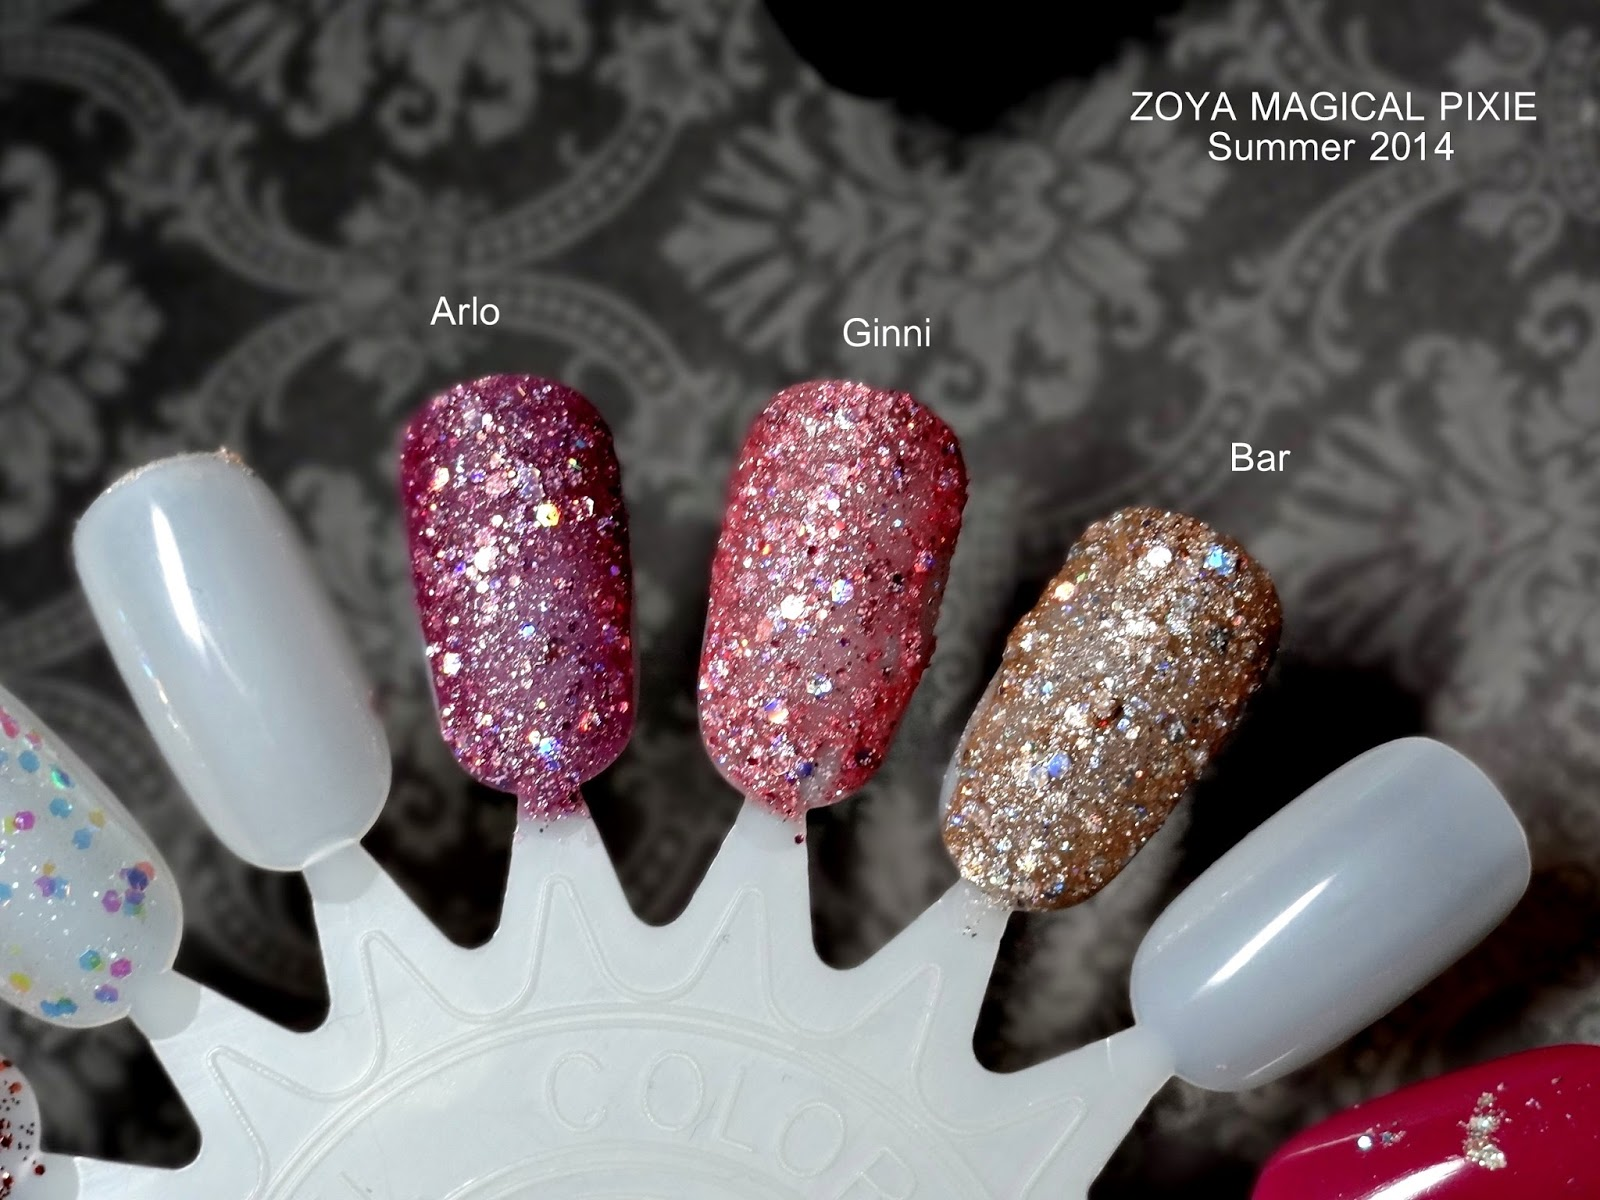 ZOYA Magical Pixie Summer 2014 Collection Review, Photos & Swatches